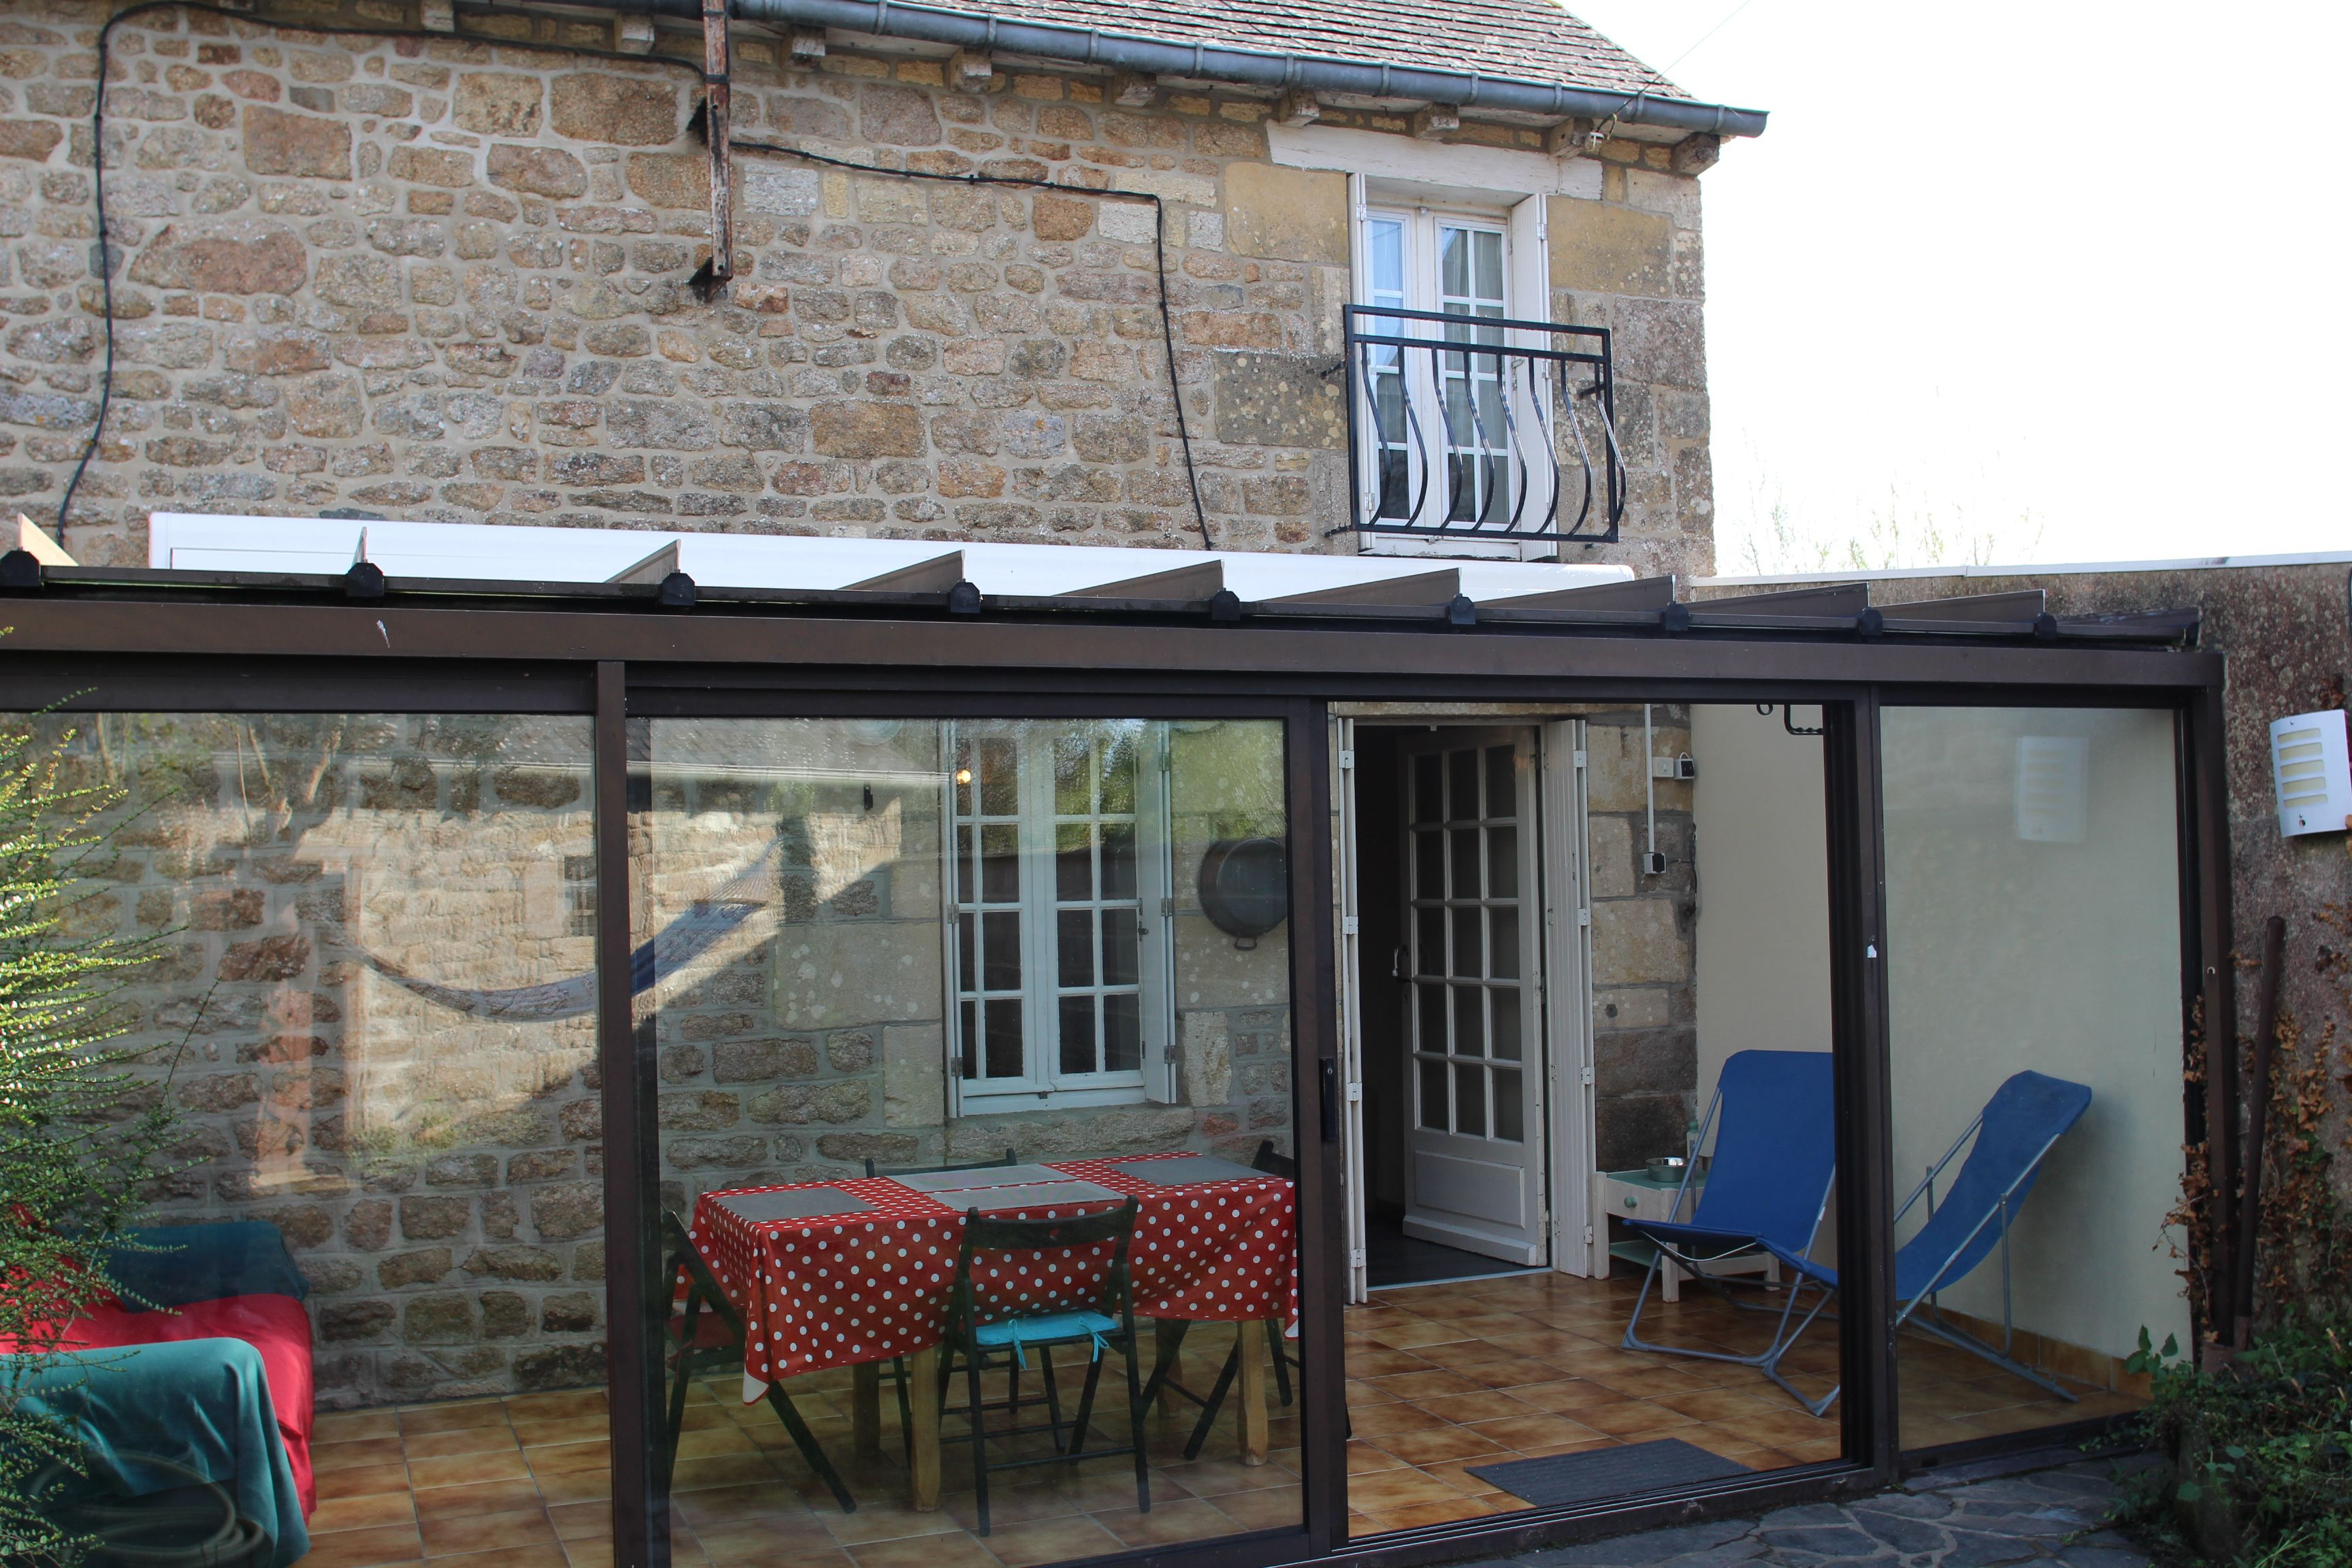 Gite in Plouasne - Vacation, holiday rental ad # 61320 Picture #0